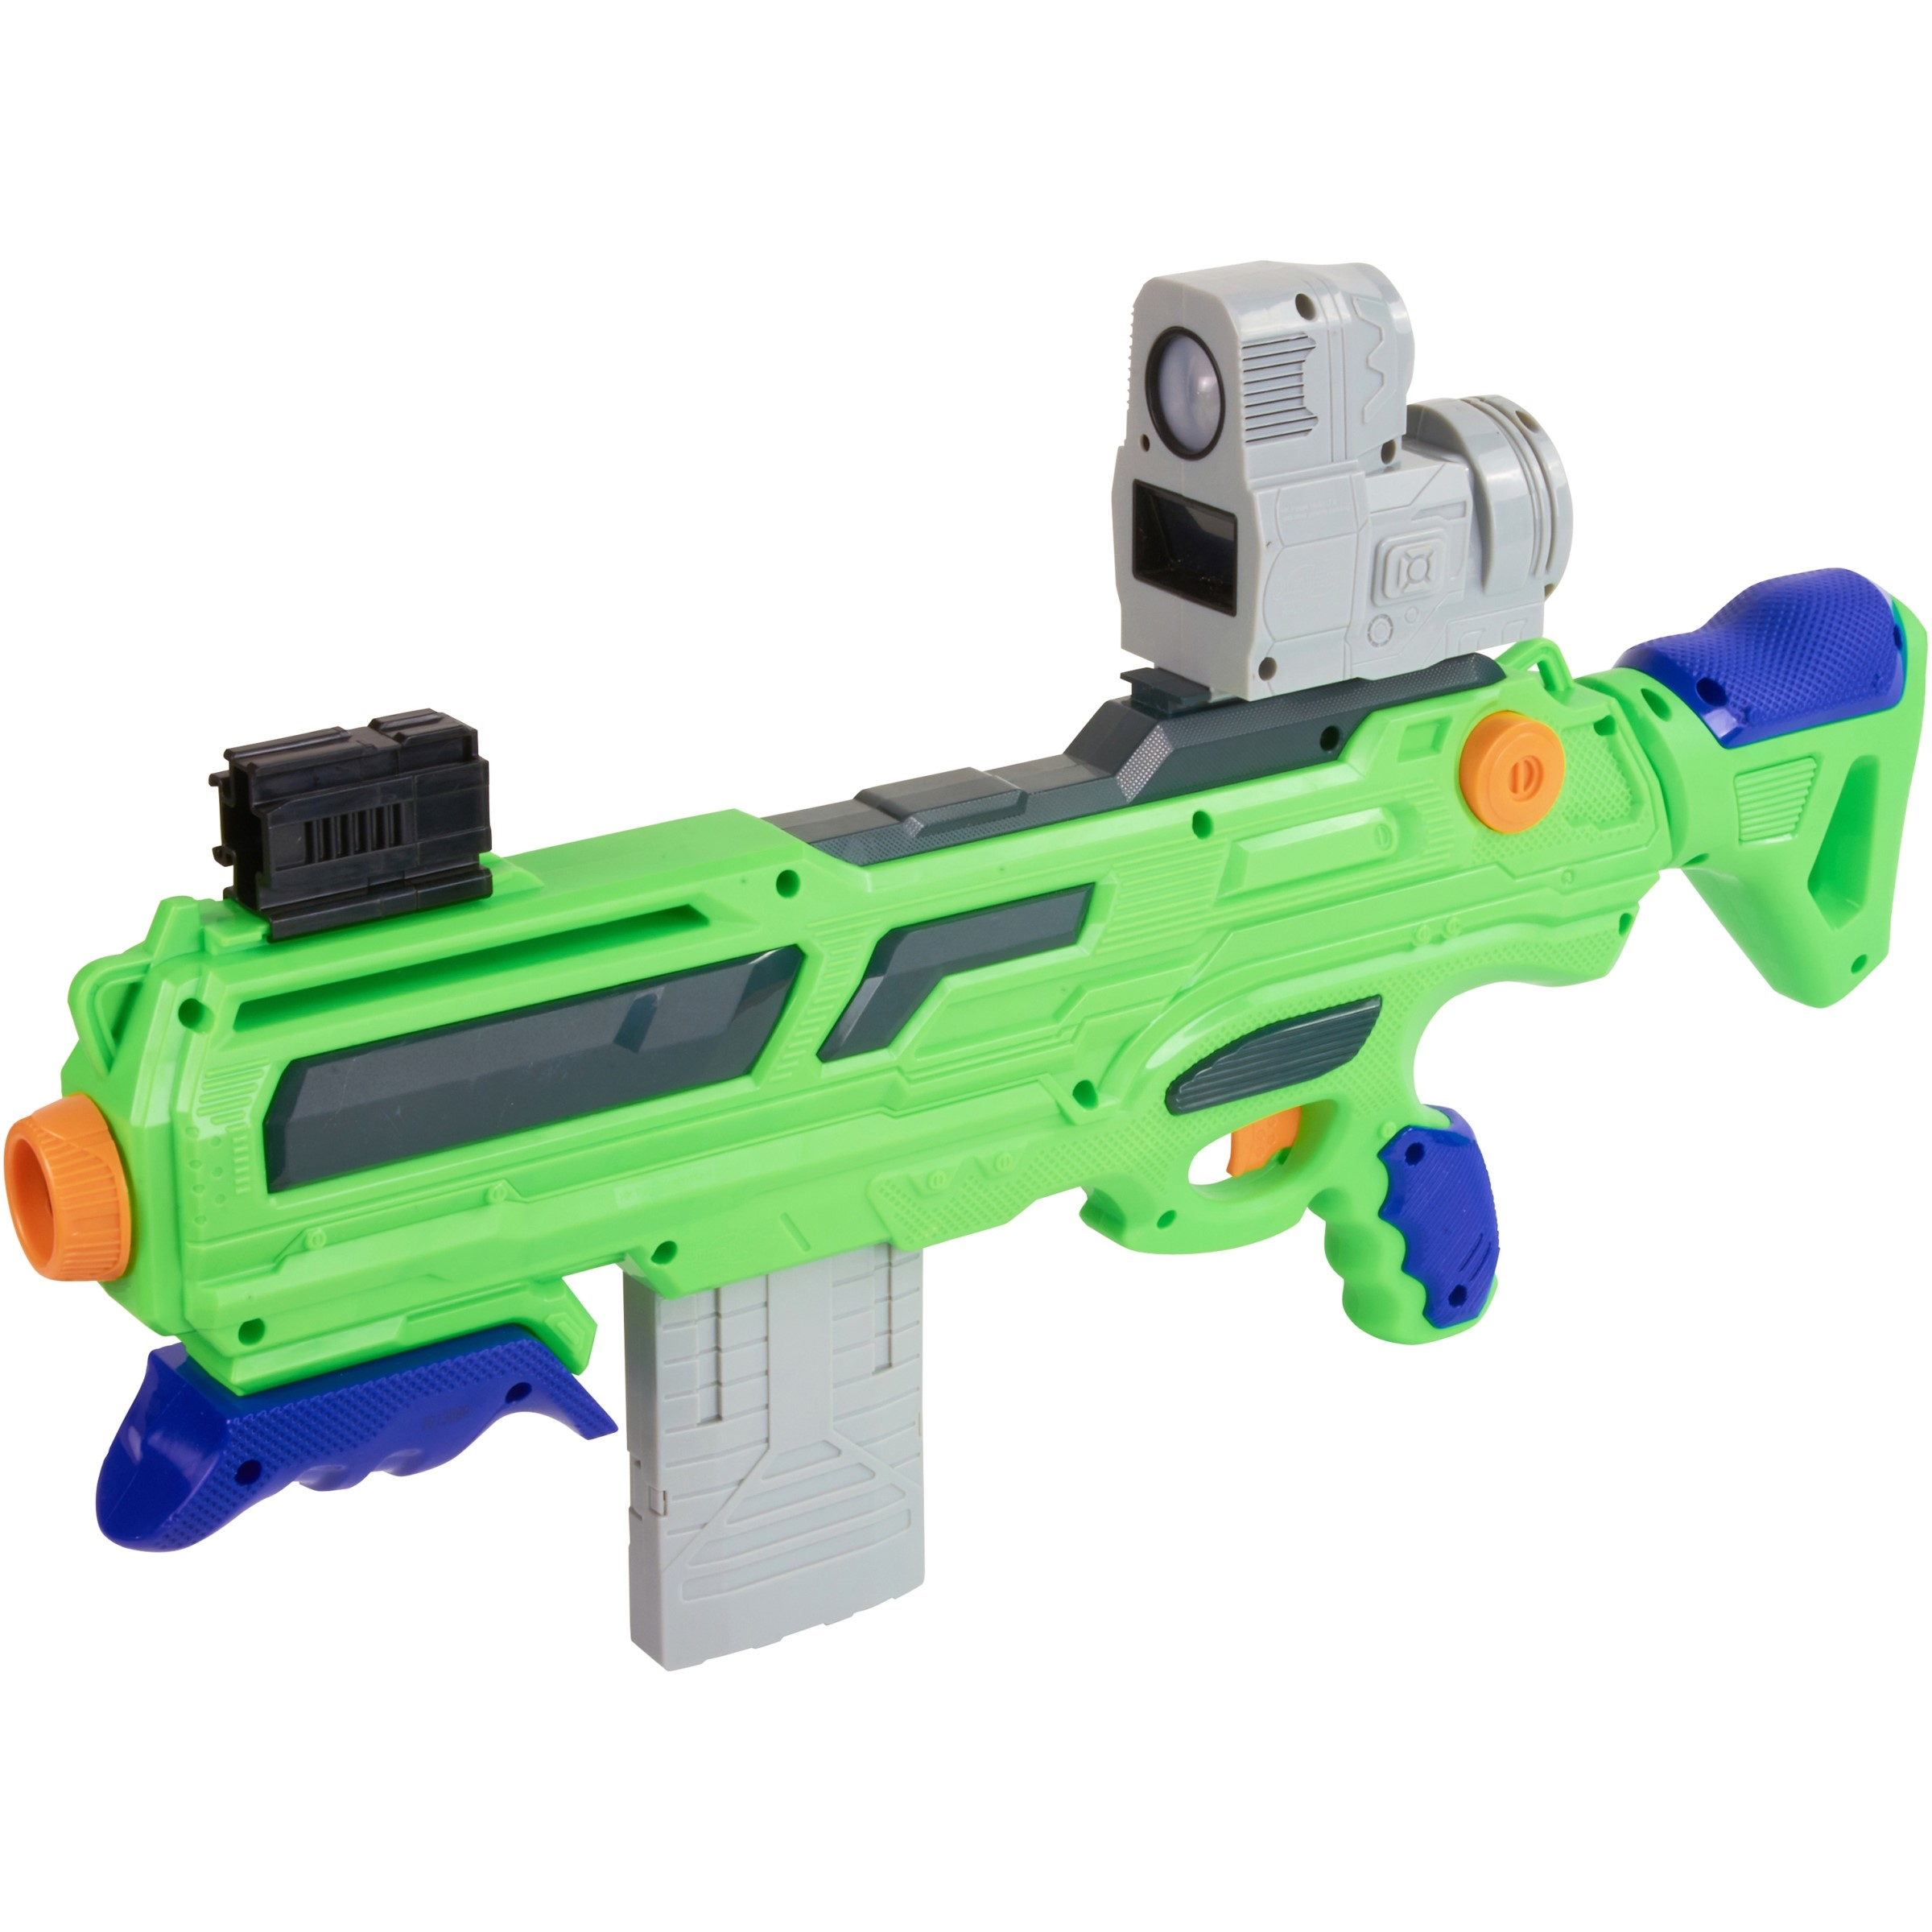 Adventure force thermal tracker bolt action blaster with heat-seeking scope